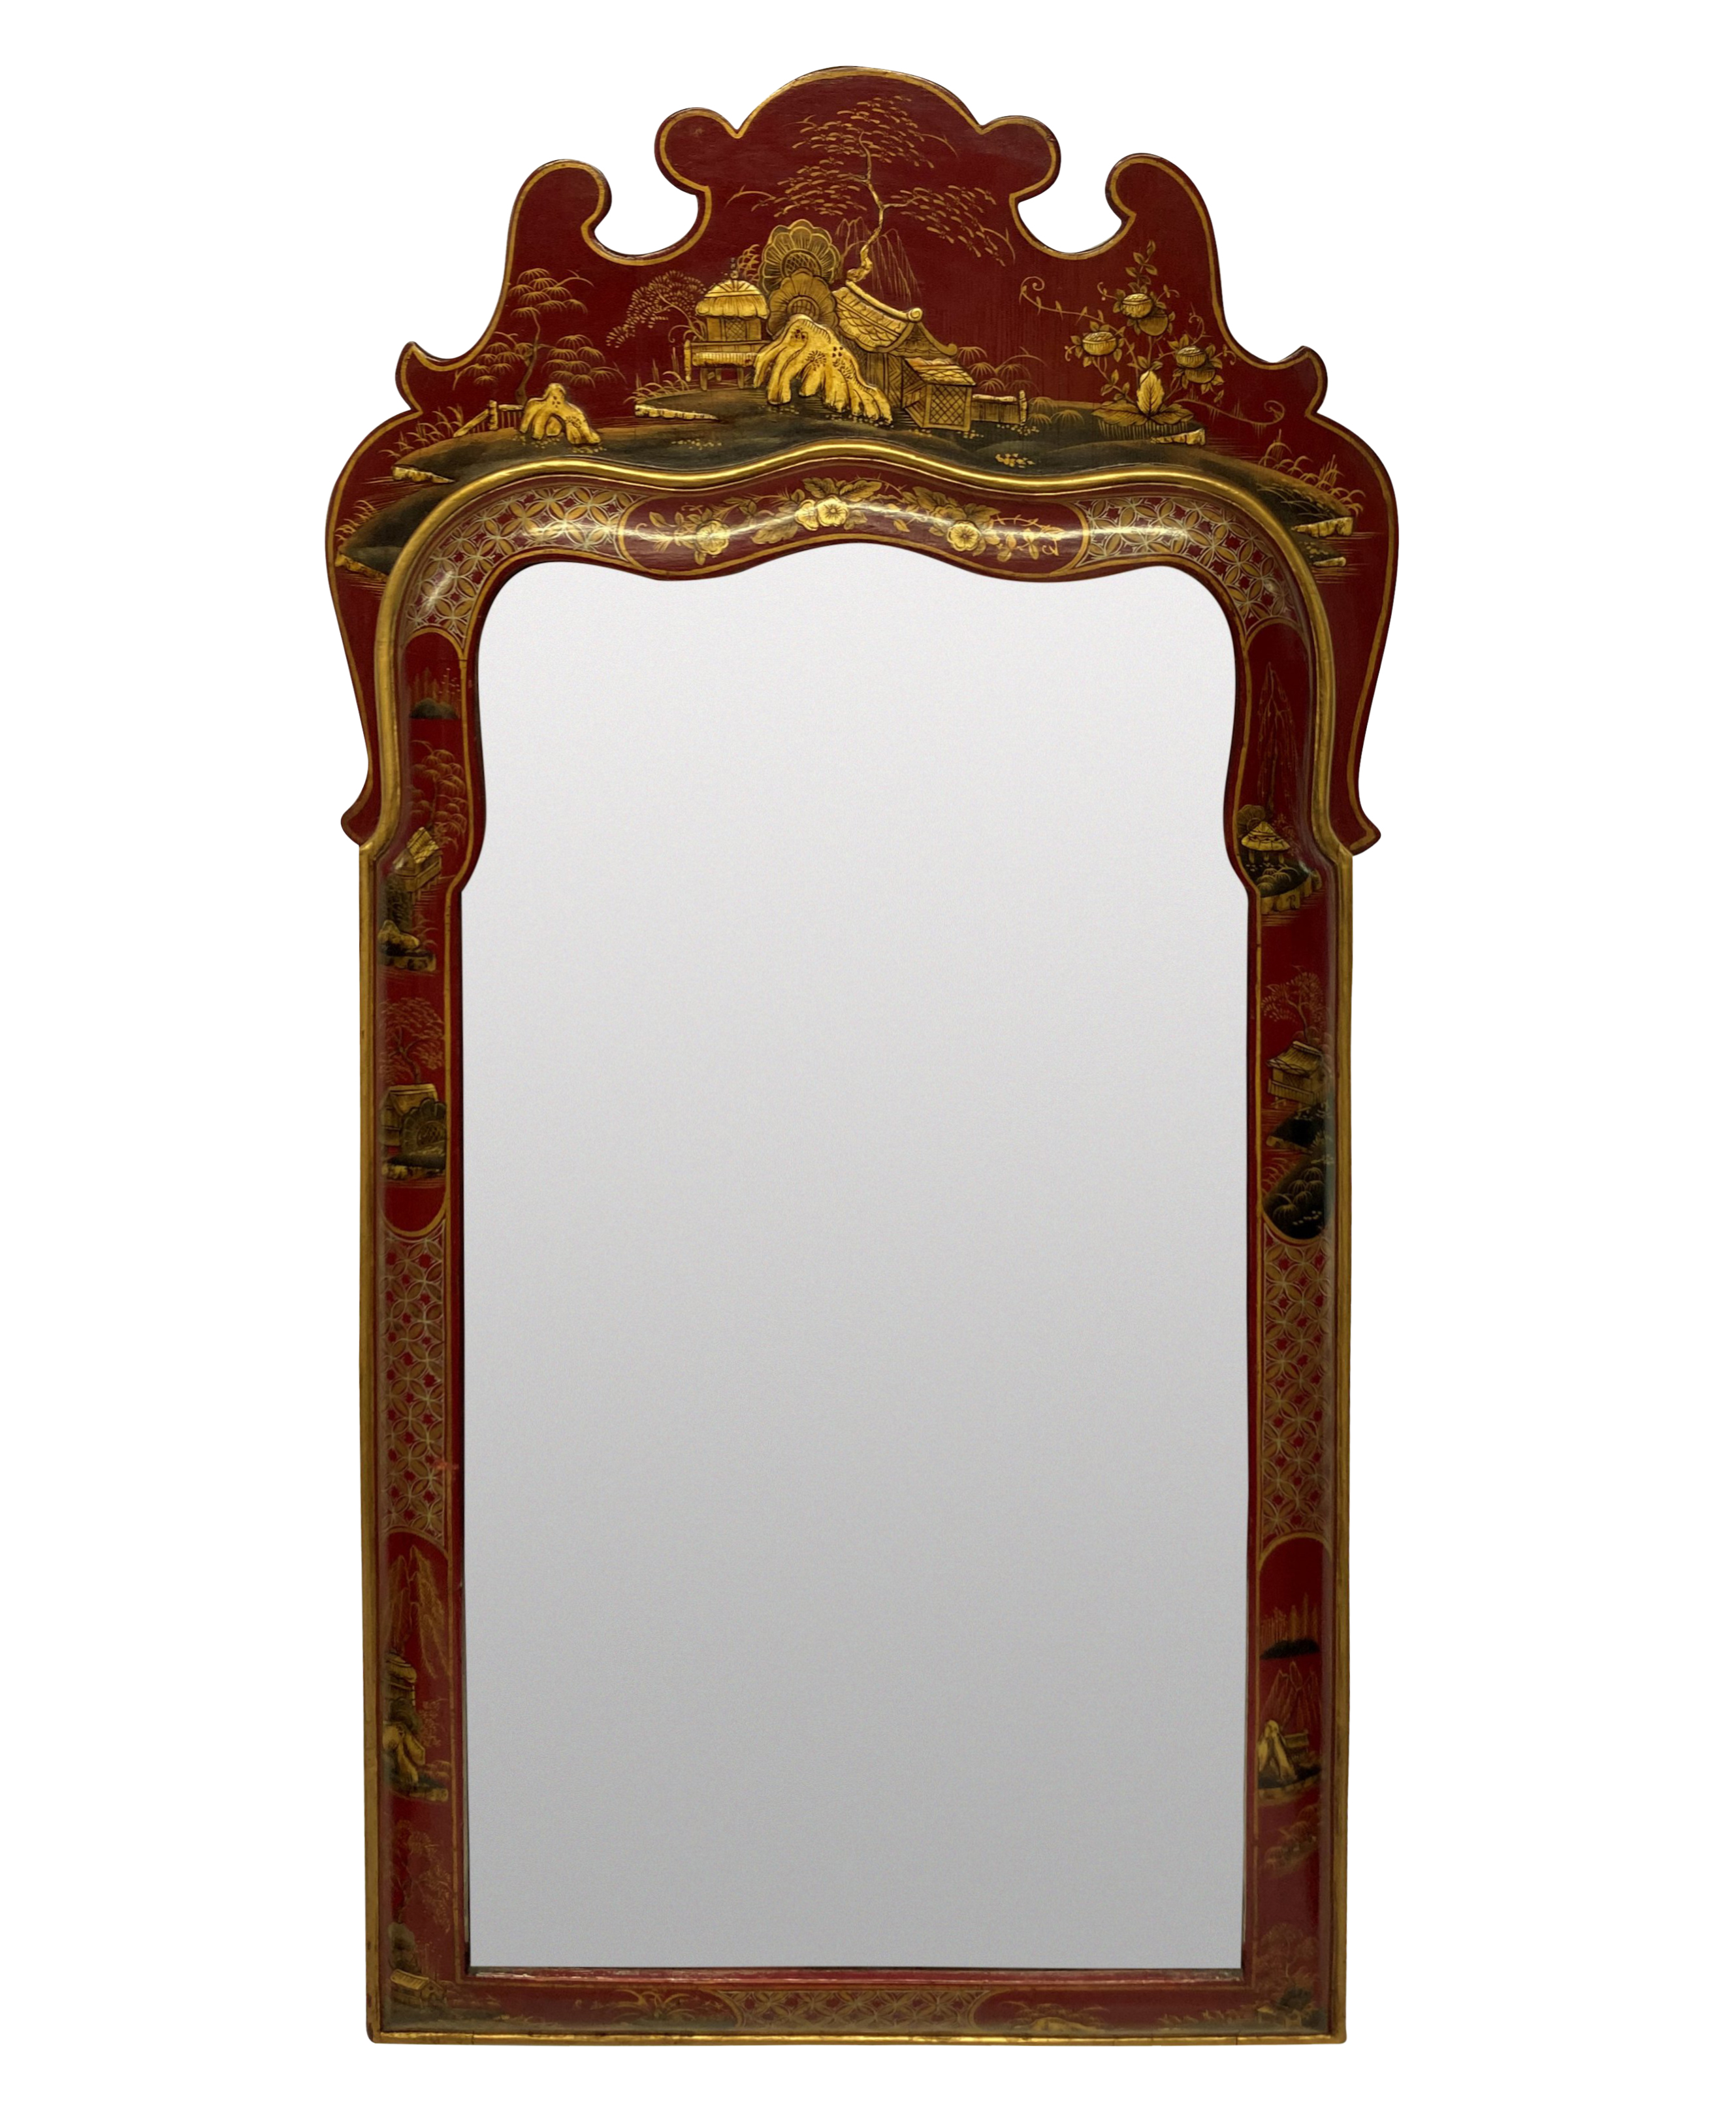 A SCARLET JAPANNED QUEEN ANNE STYLE MIRROR